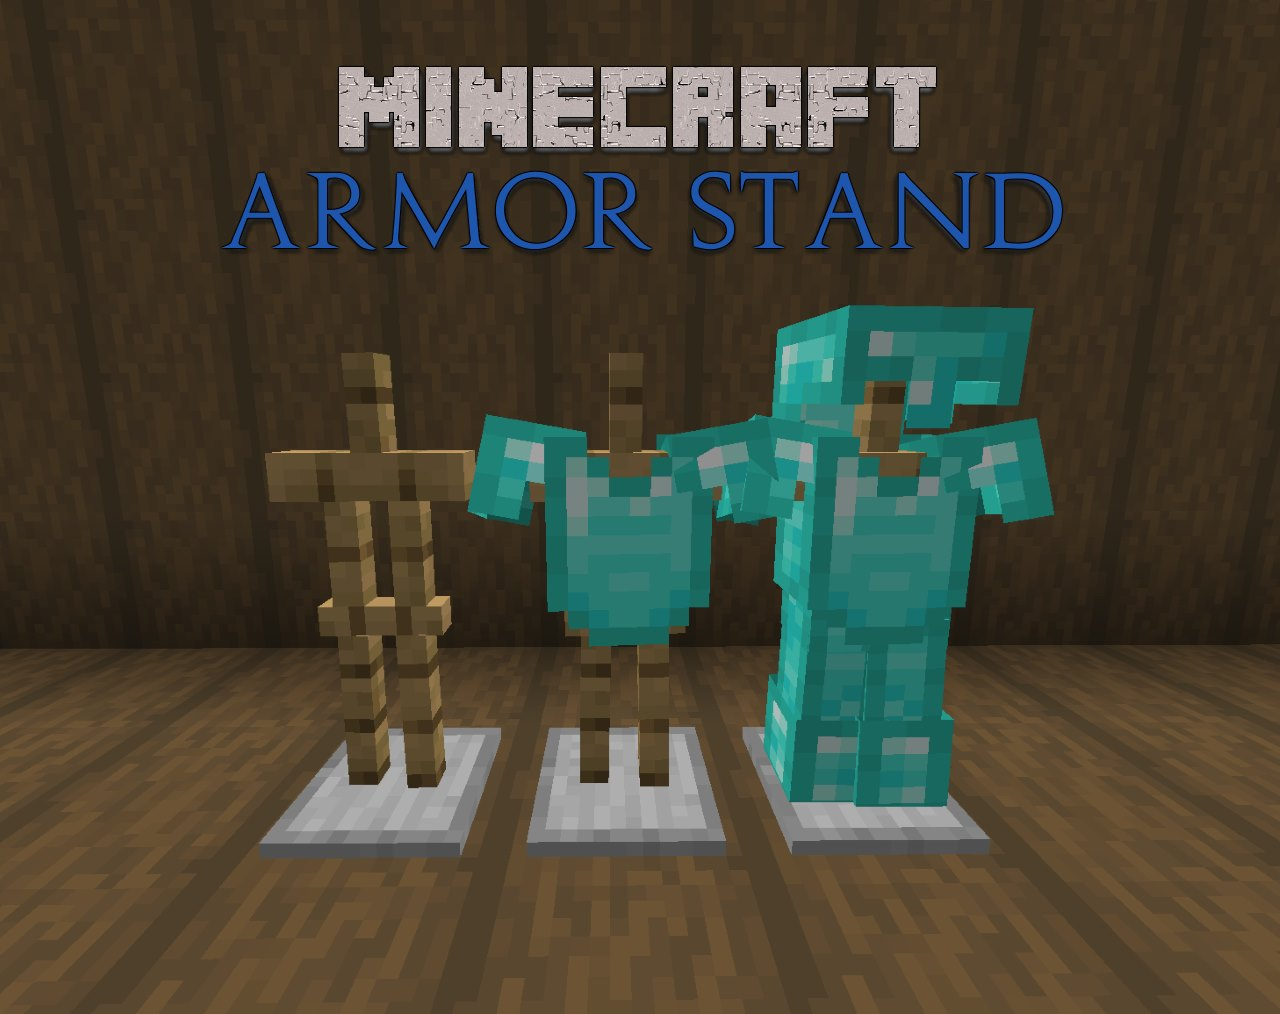 minecraft armor stands with diamond armor set